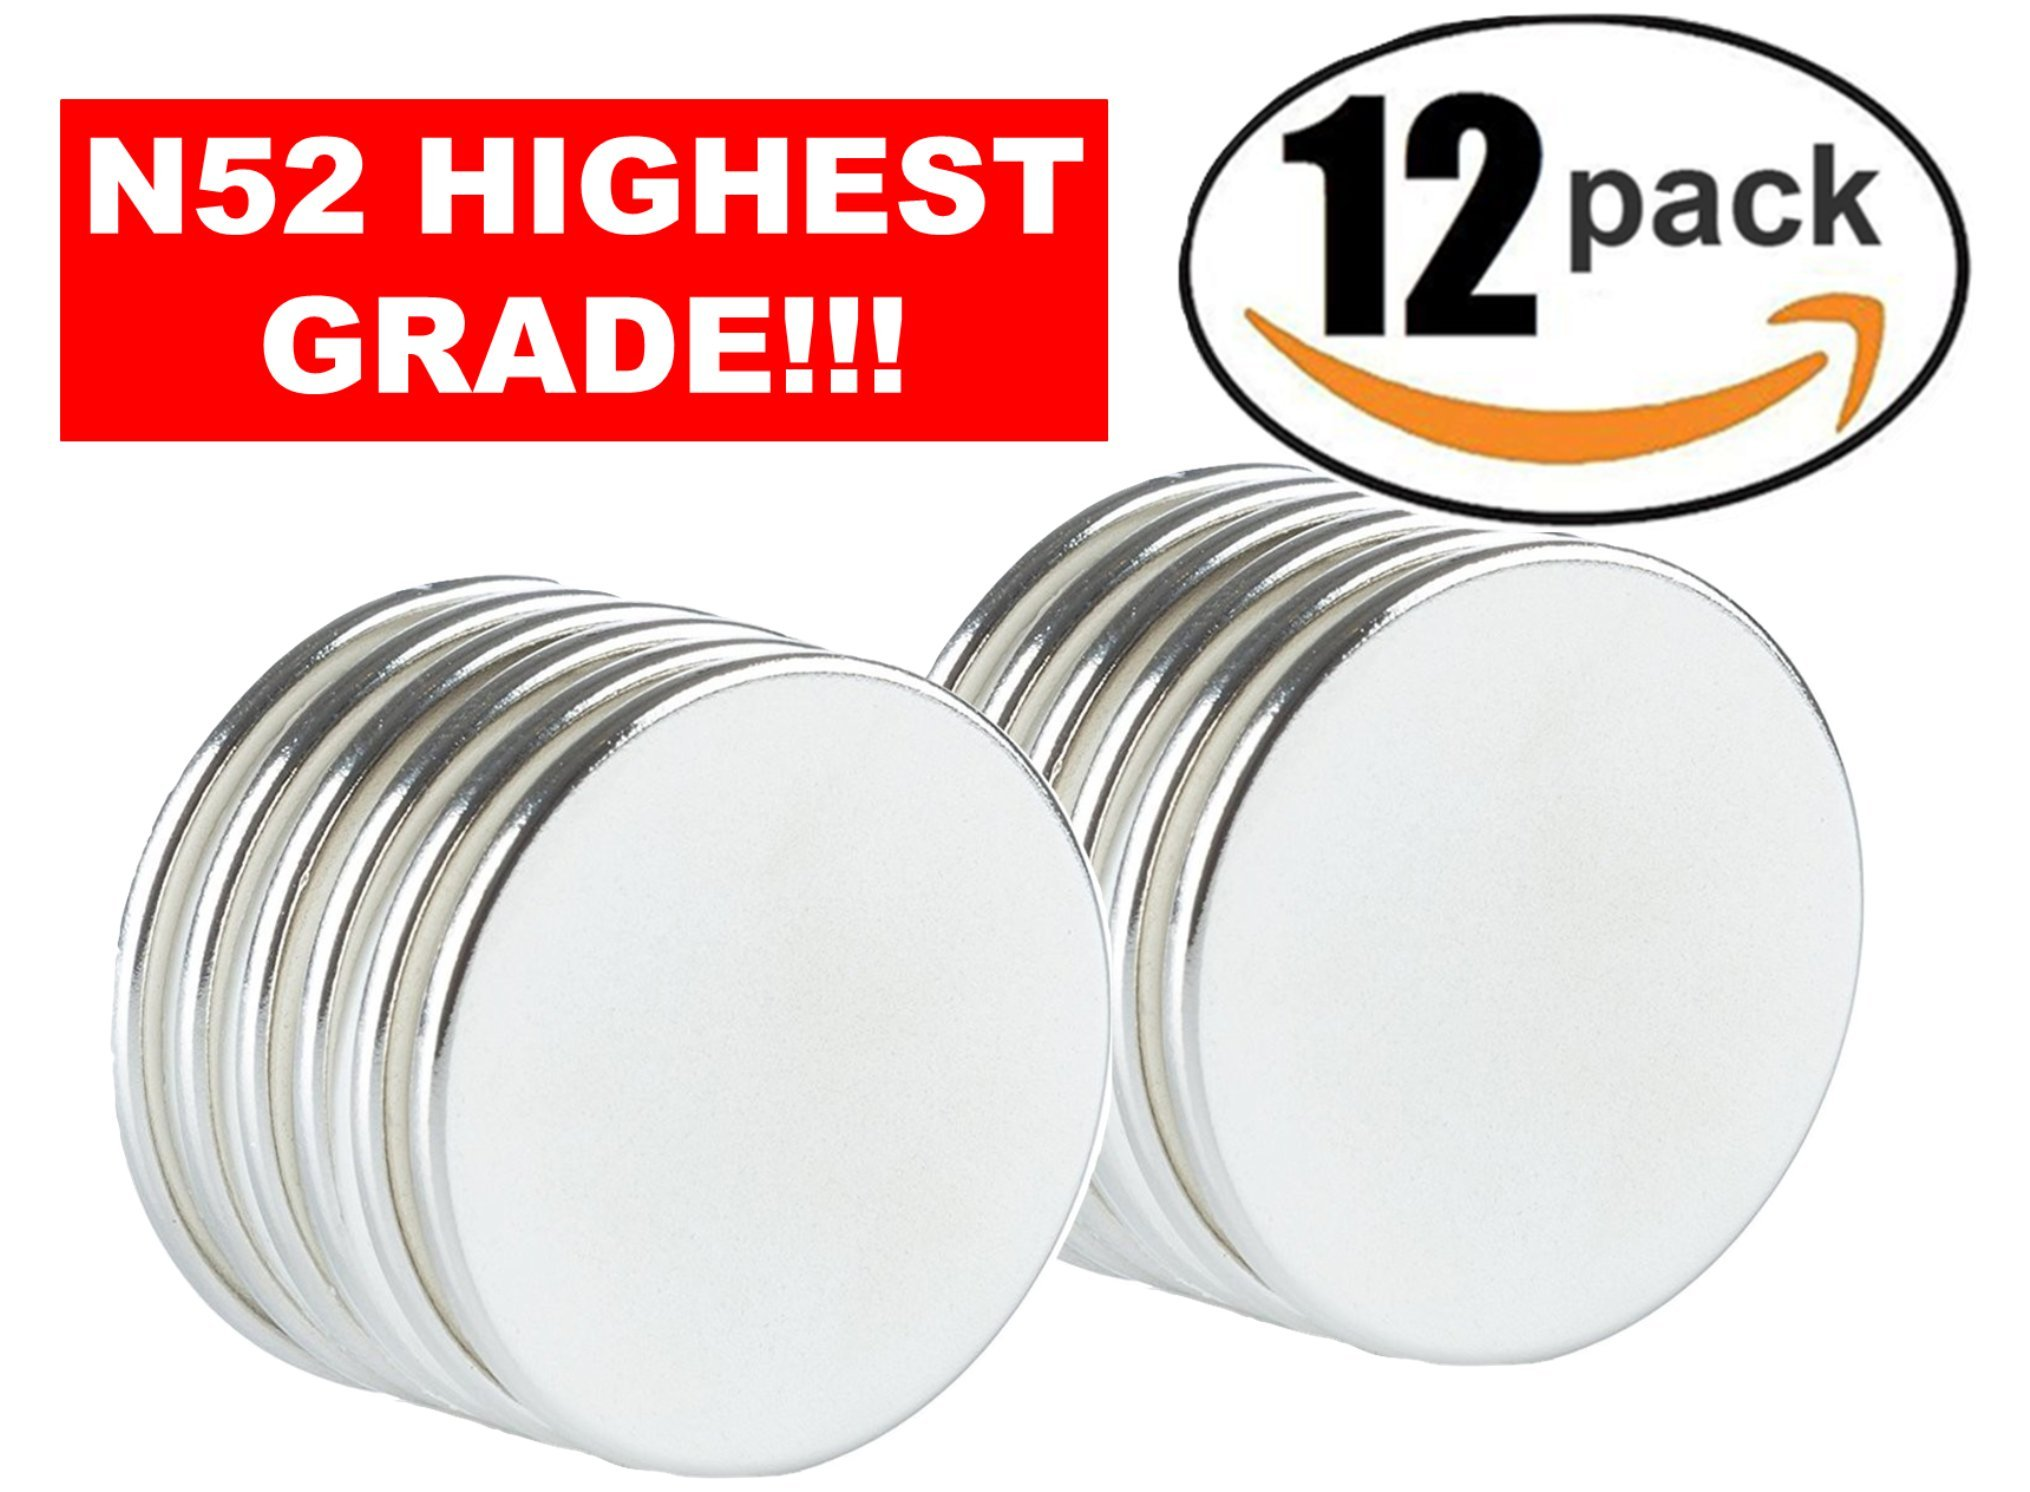 Strong Magnets Neodymium Rare Earth: N52 Disc Super Permanent Metal Round, 1.26''DX0.06''H, Powerful Pull Force, 12 Piece | Heavy Duty, Fridge Door, Garage, Kitchen, Science, Craft, Art, Office, Therapy